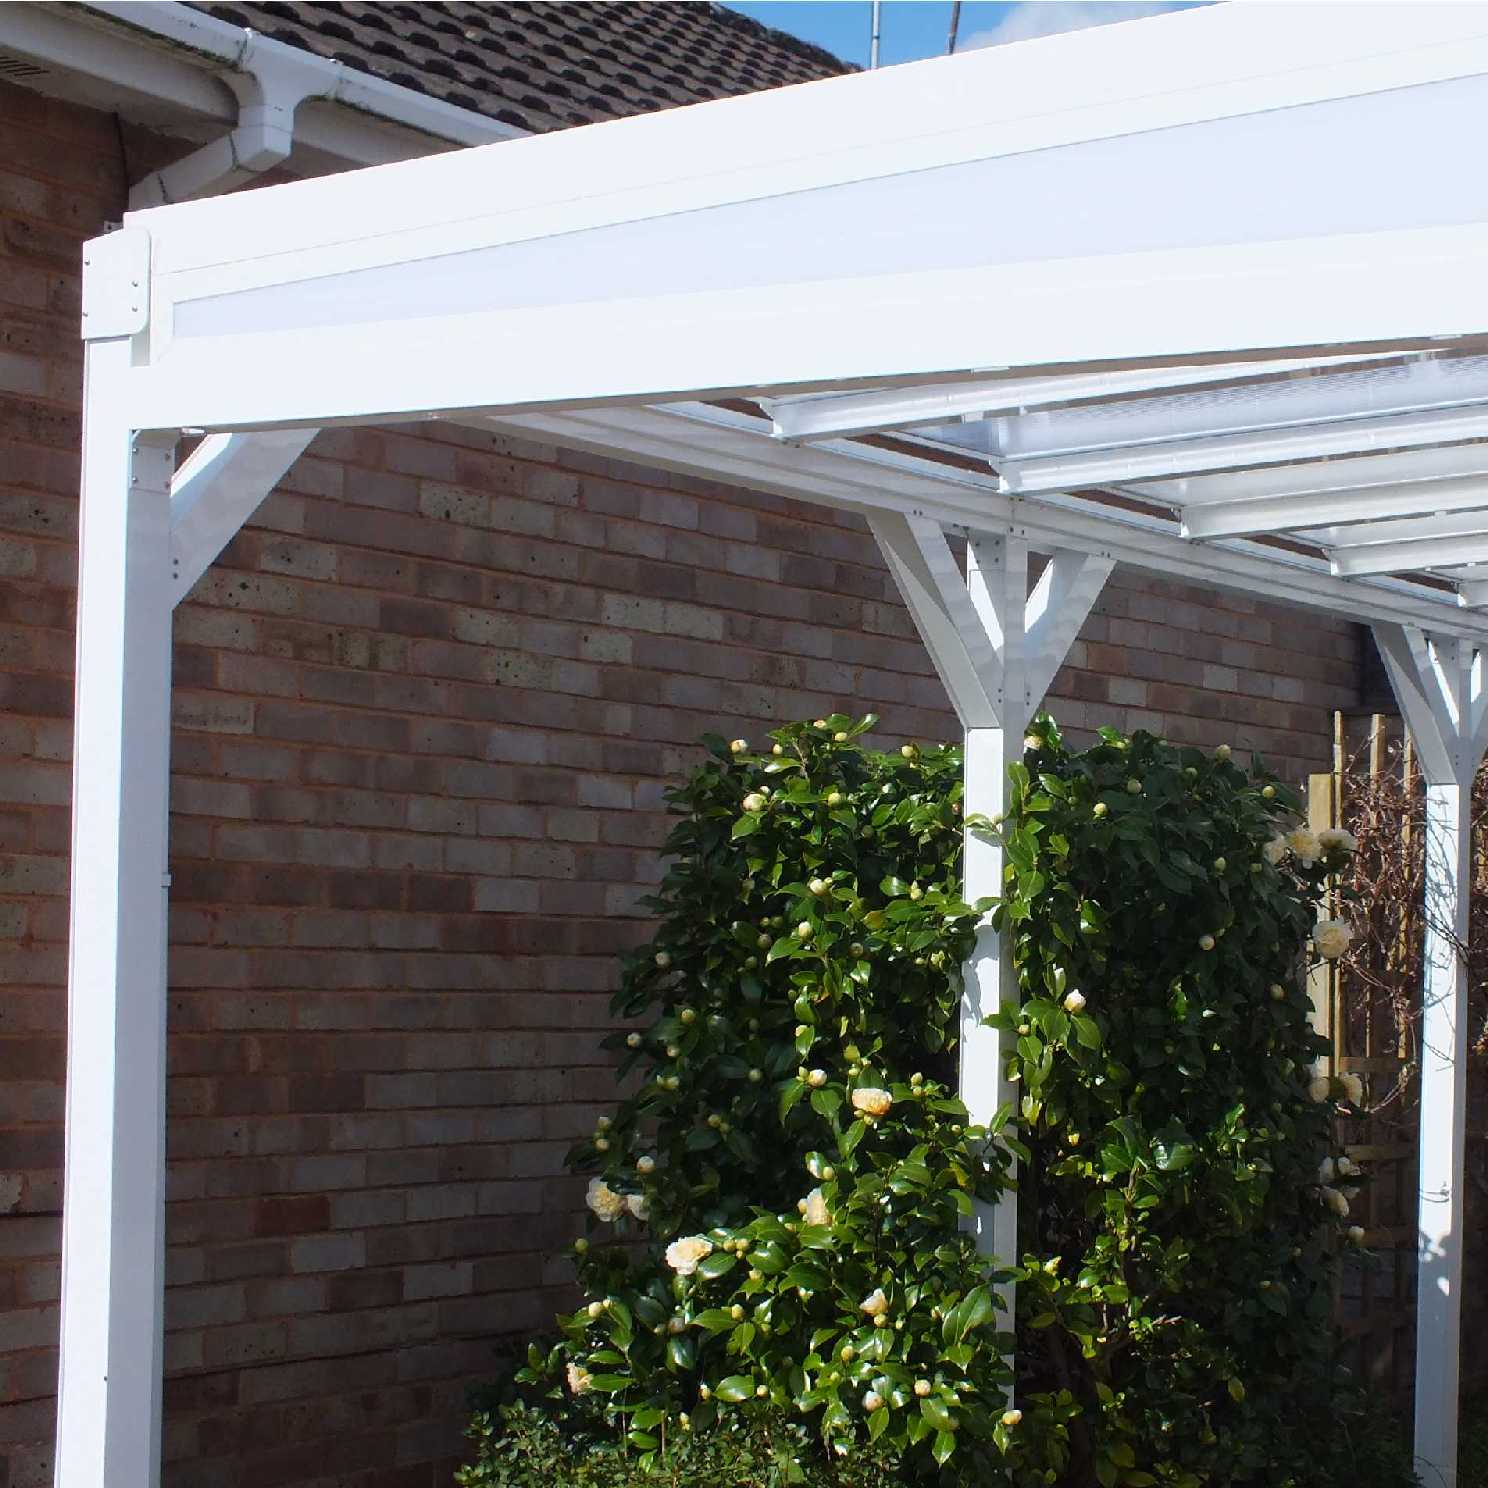 Omega Smart Lean-To Canopy with 16mm Polycarbonate Glazing - 9.2m (W) x 3.5m (P), (5) Supporting Posts from Omega Build